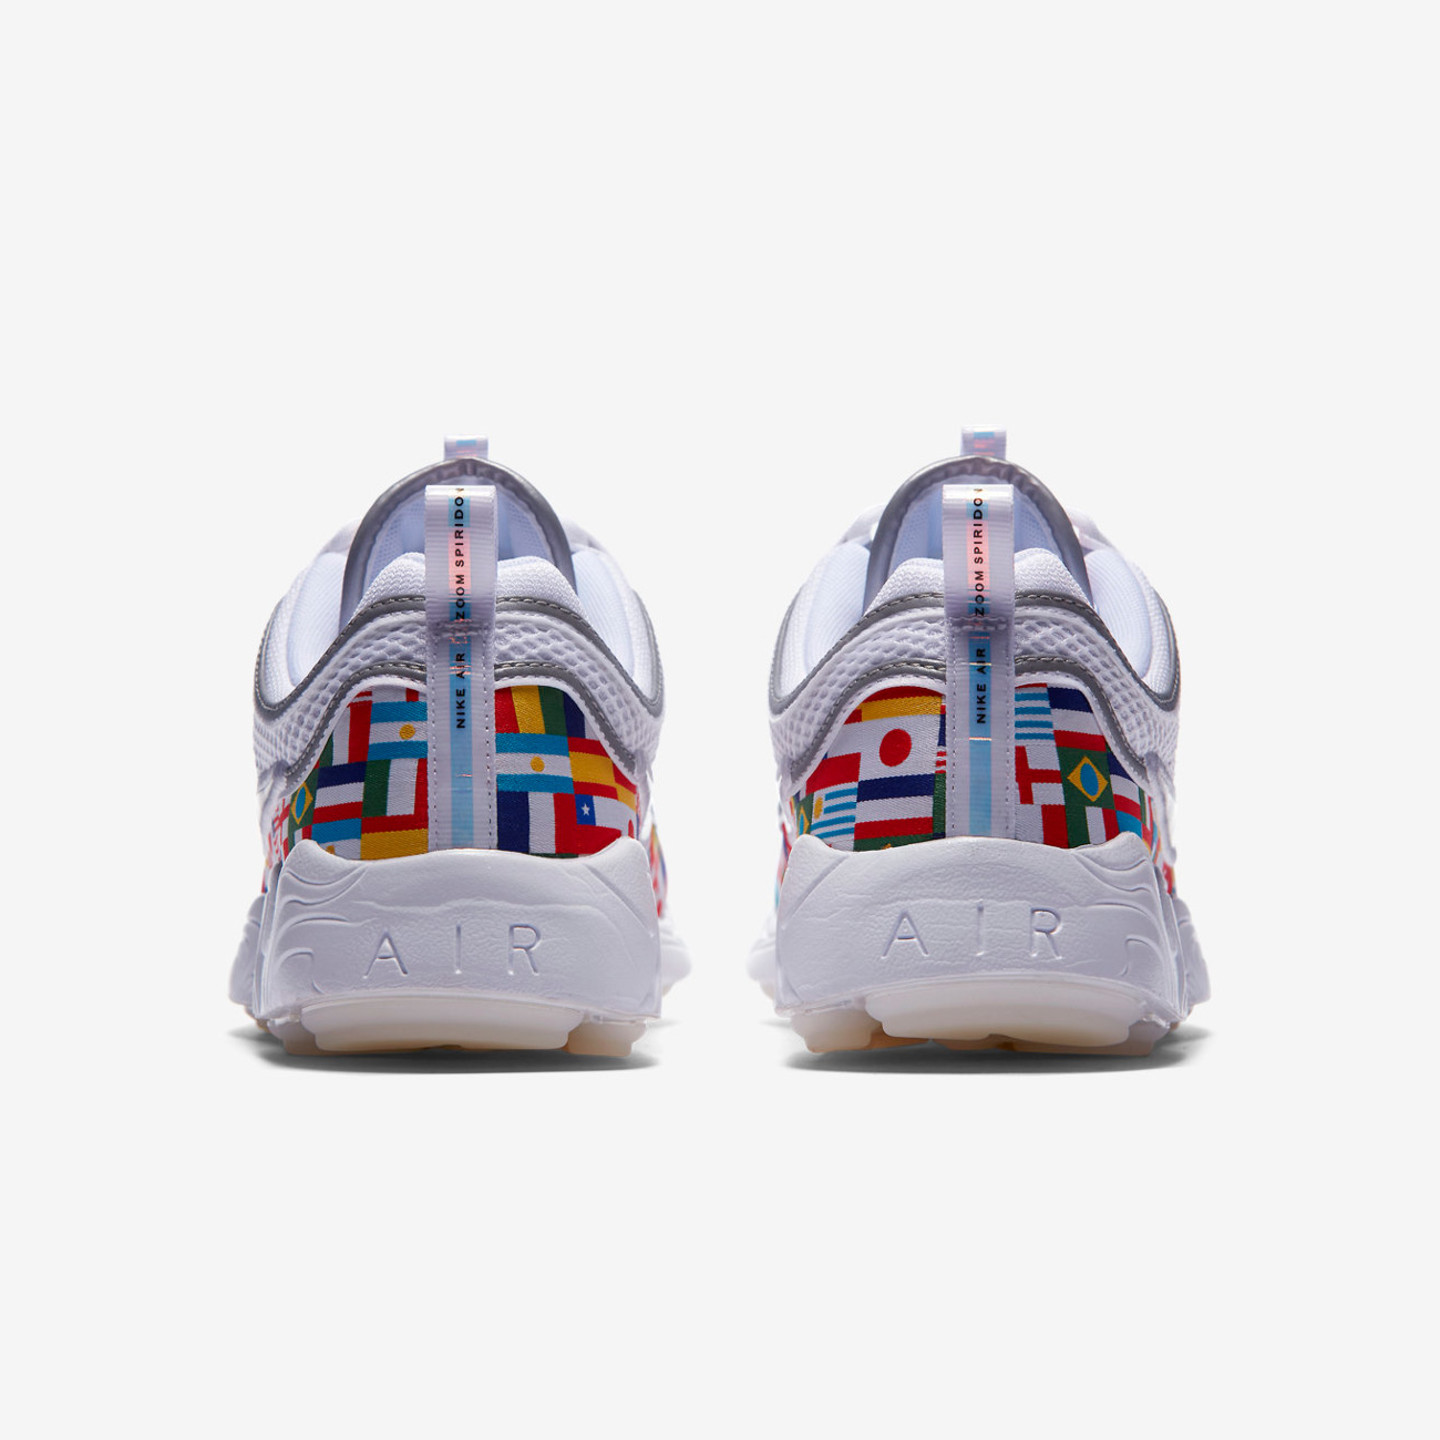 Nike Air Zoom Spiridon '16 NIC 'One World' QS White / Multicolor AO5121-100